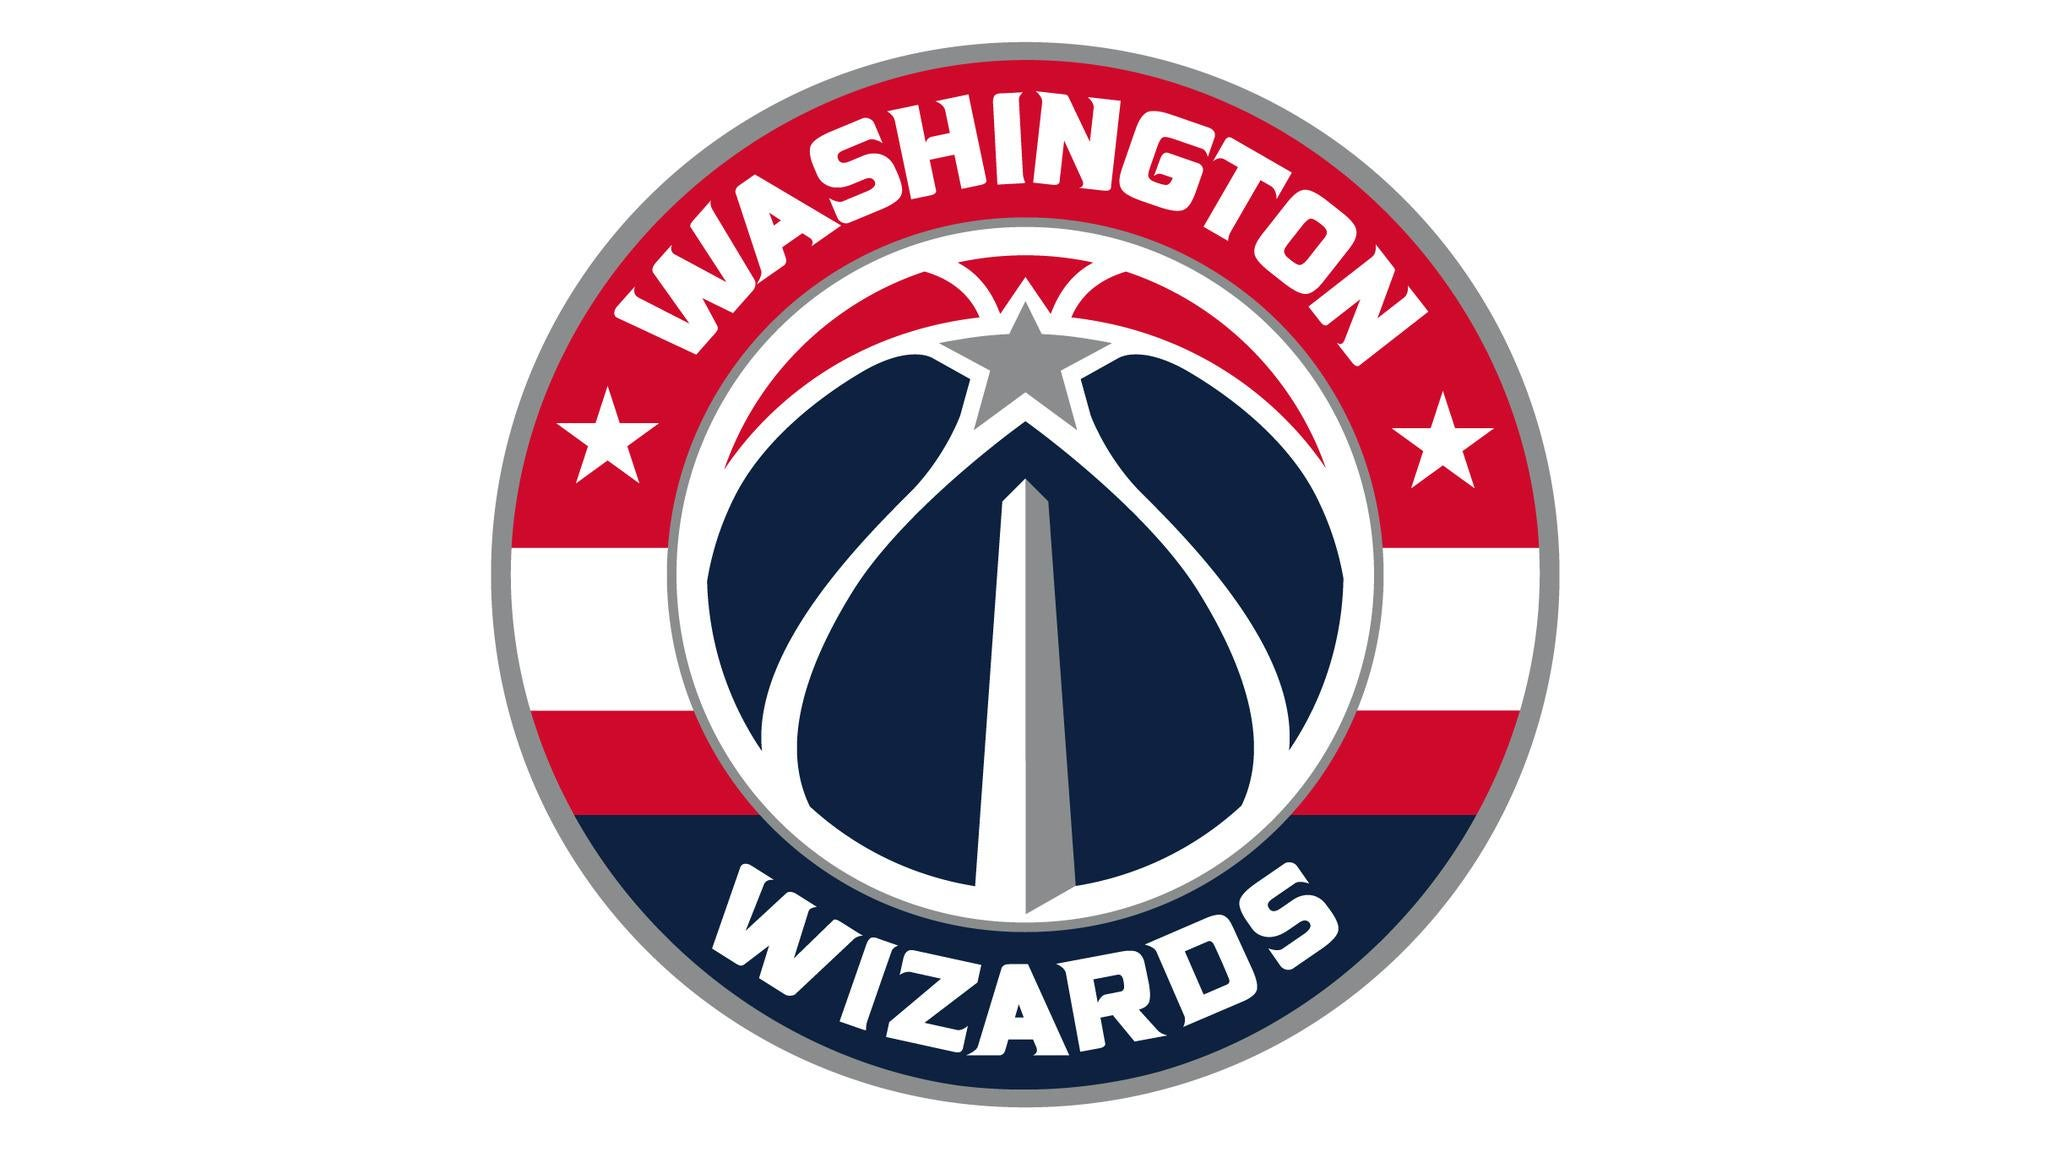 Washington Wizards vs. Denver Nuggets at Verizon Center - Washington, DC 20004